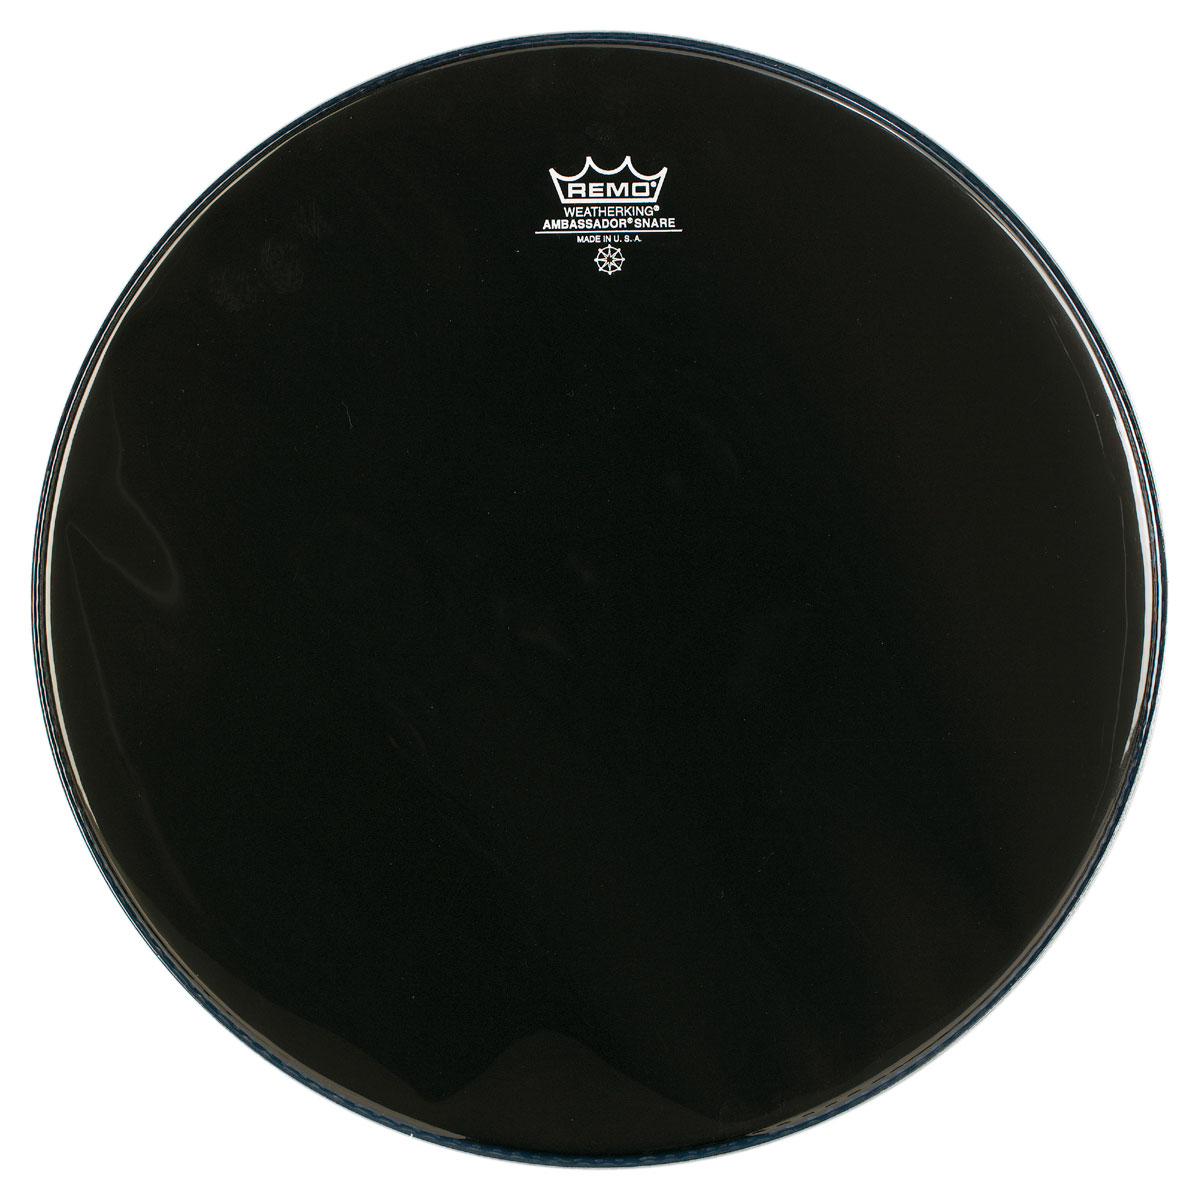 "Remo 14"" Ambassador Ebony Marching Snare Side (Bottom) Drum Head"